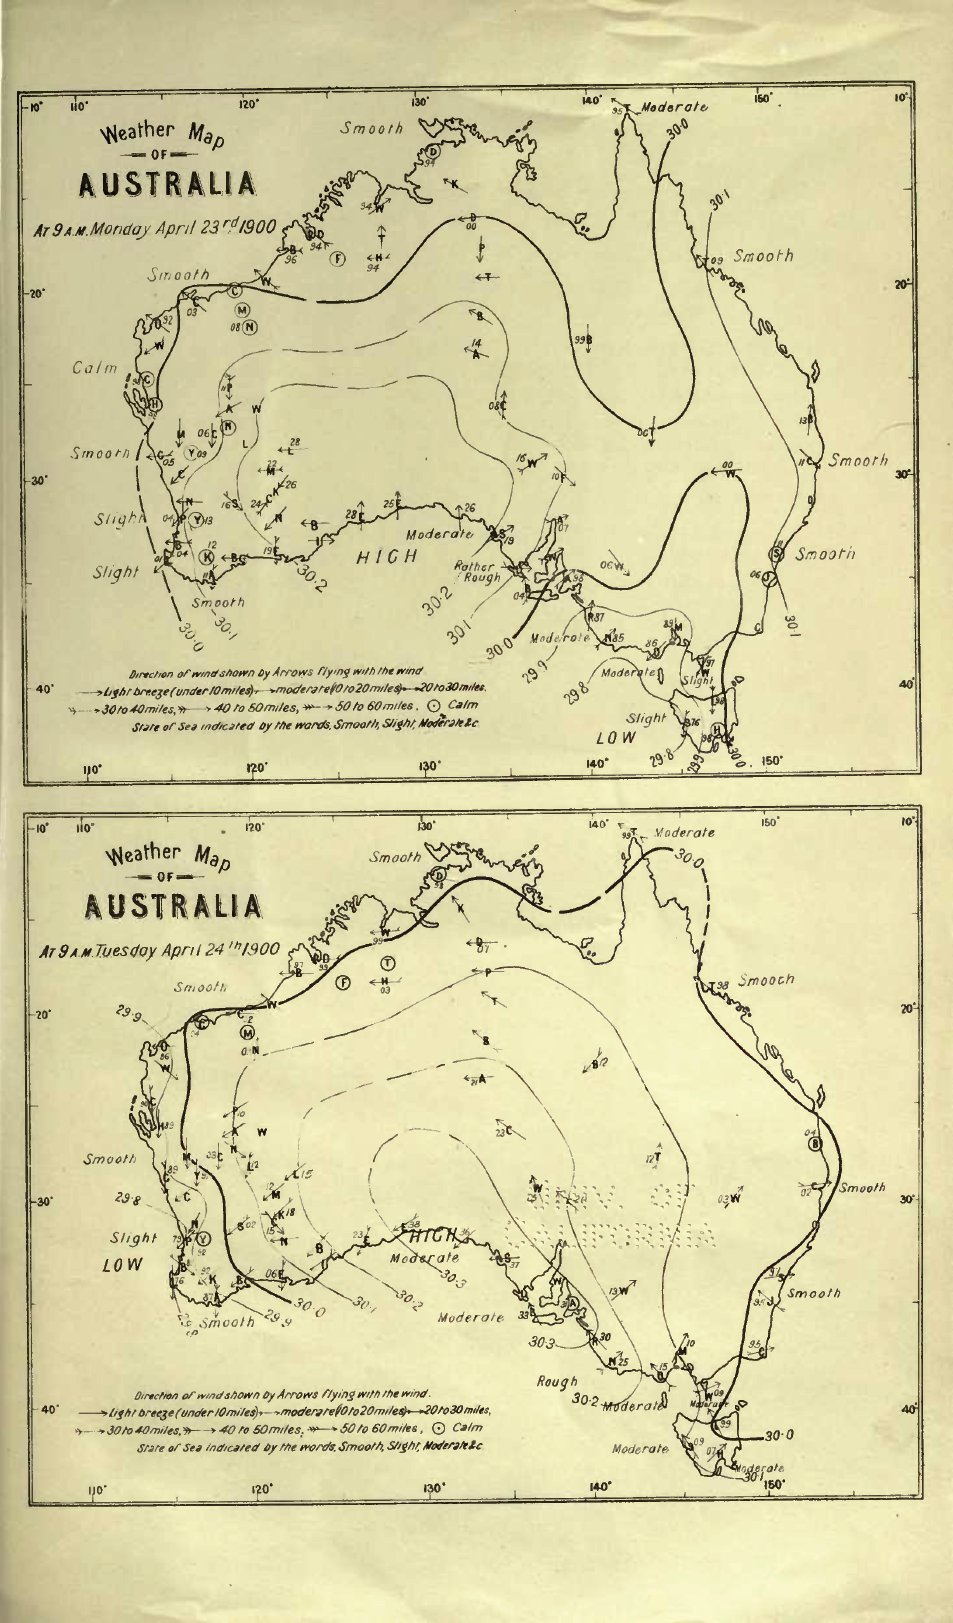 Australia Map 1900.File Cooke Weather Map Of Australia April 23and24 1900 Png